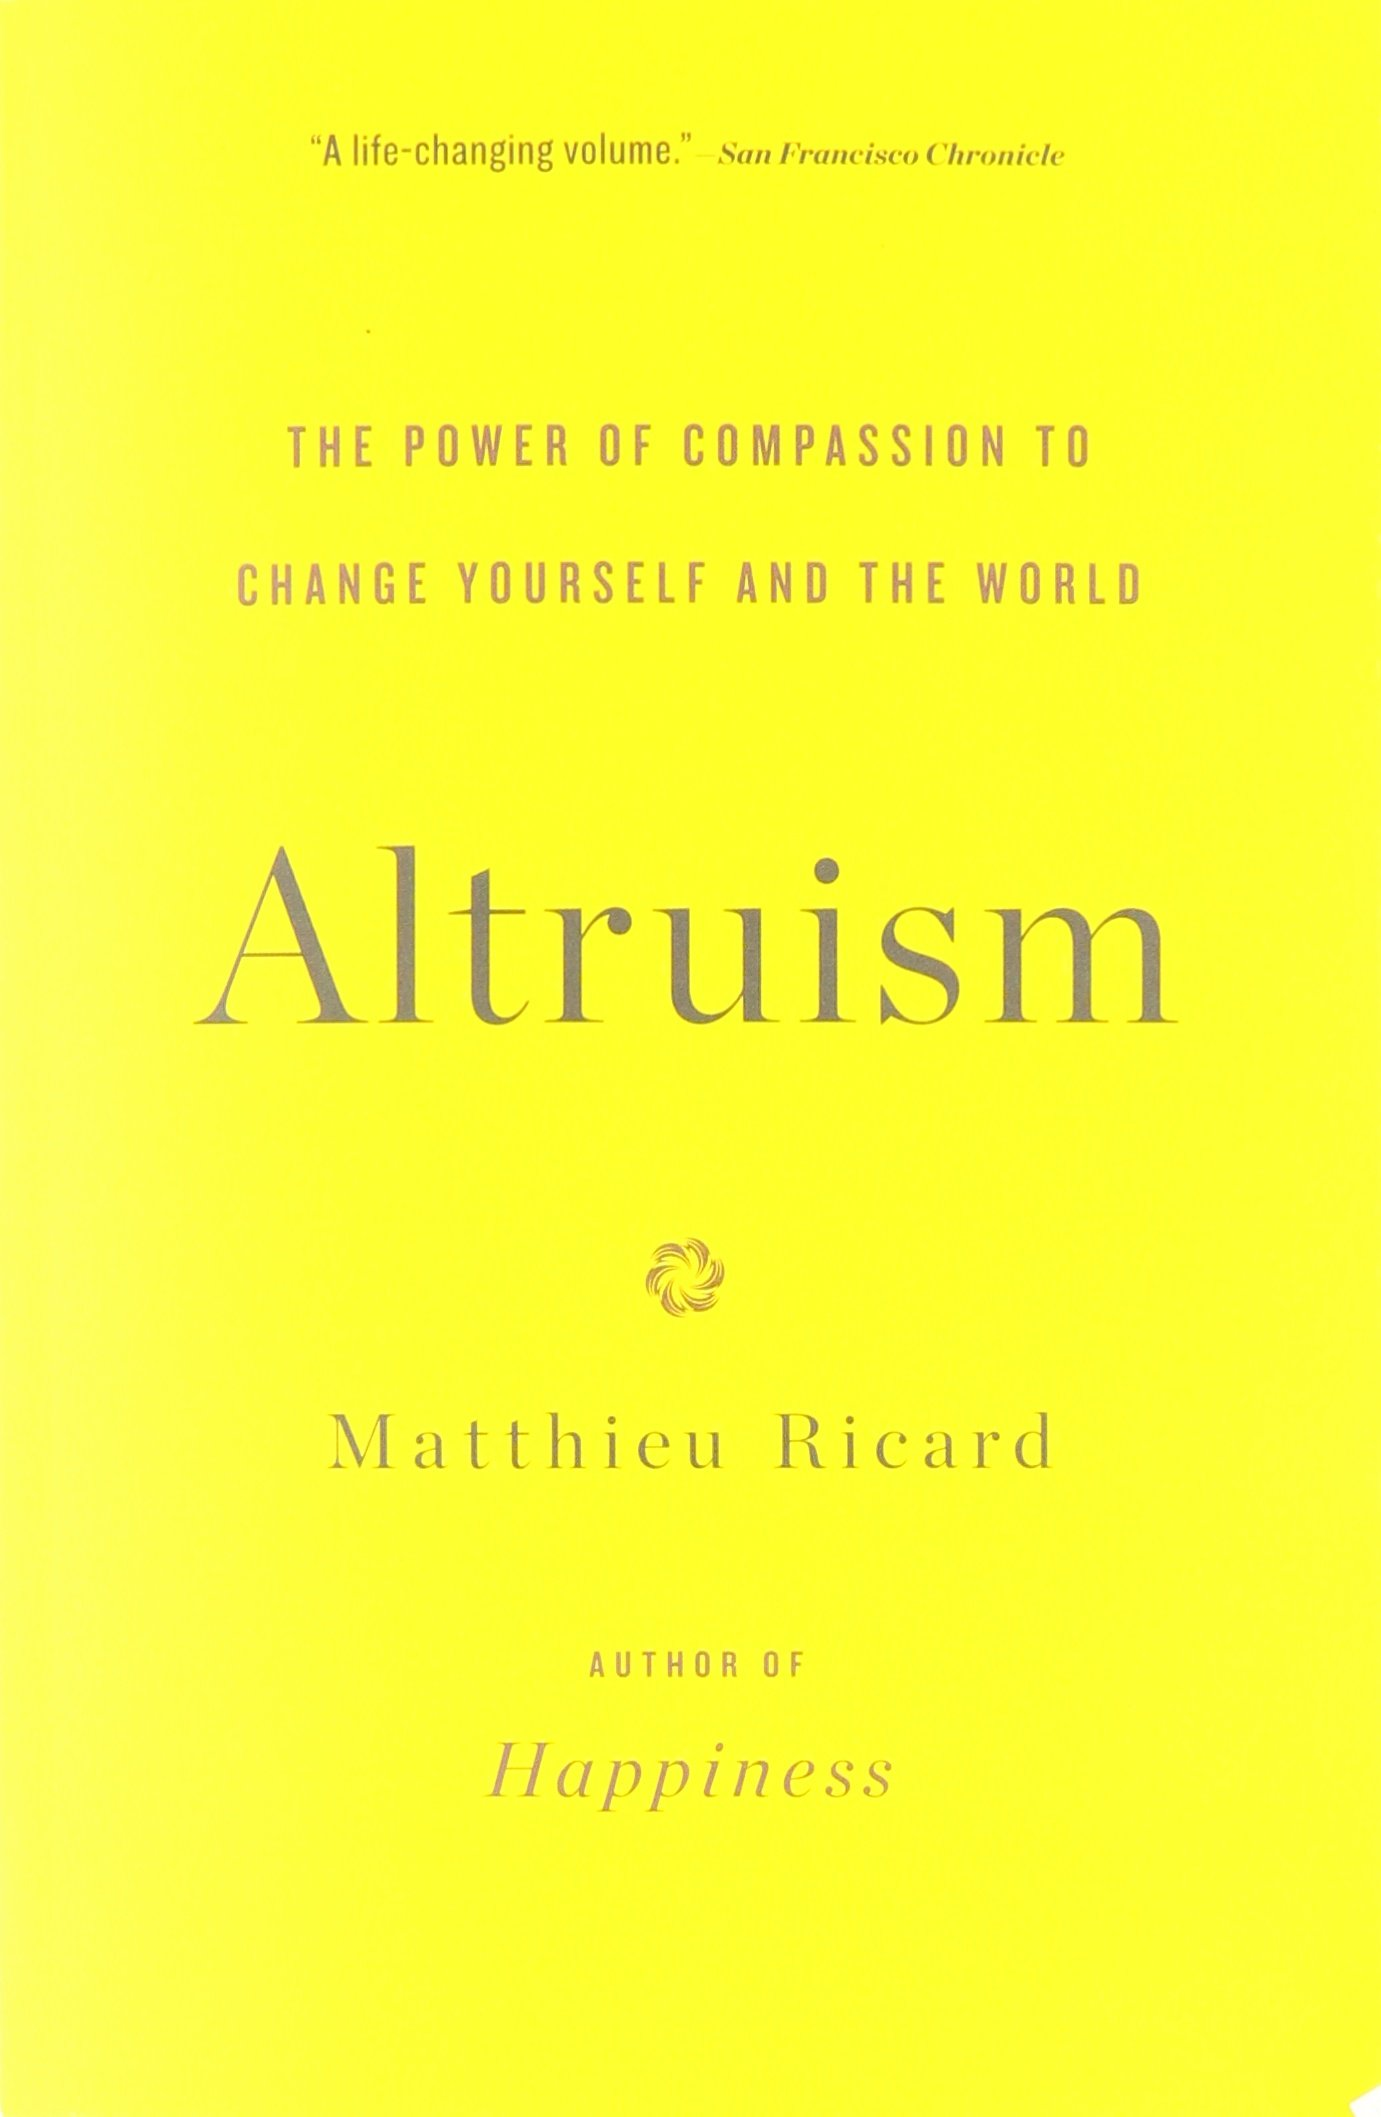 altruism the power of compassion to change yourself and the world  altruism the power of compassion to change yourself and the world amazon co uk matthieu ricard translator charlotte mandell sam gordon 9780316208239